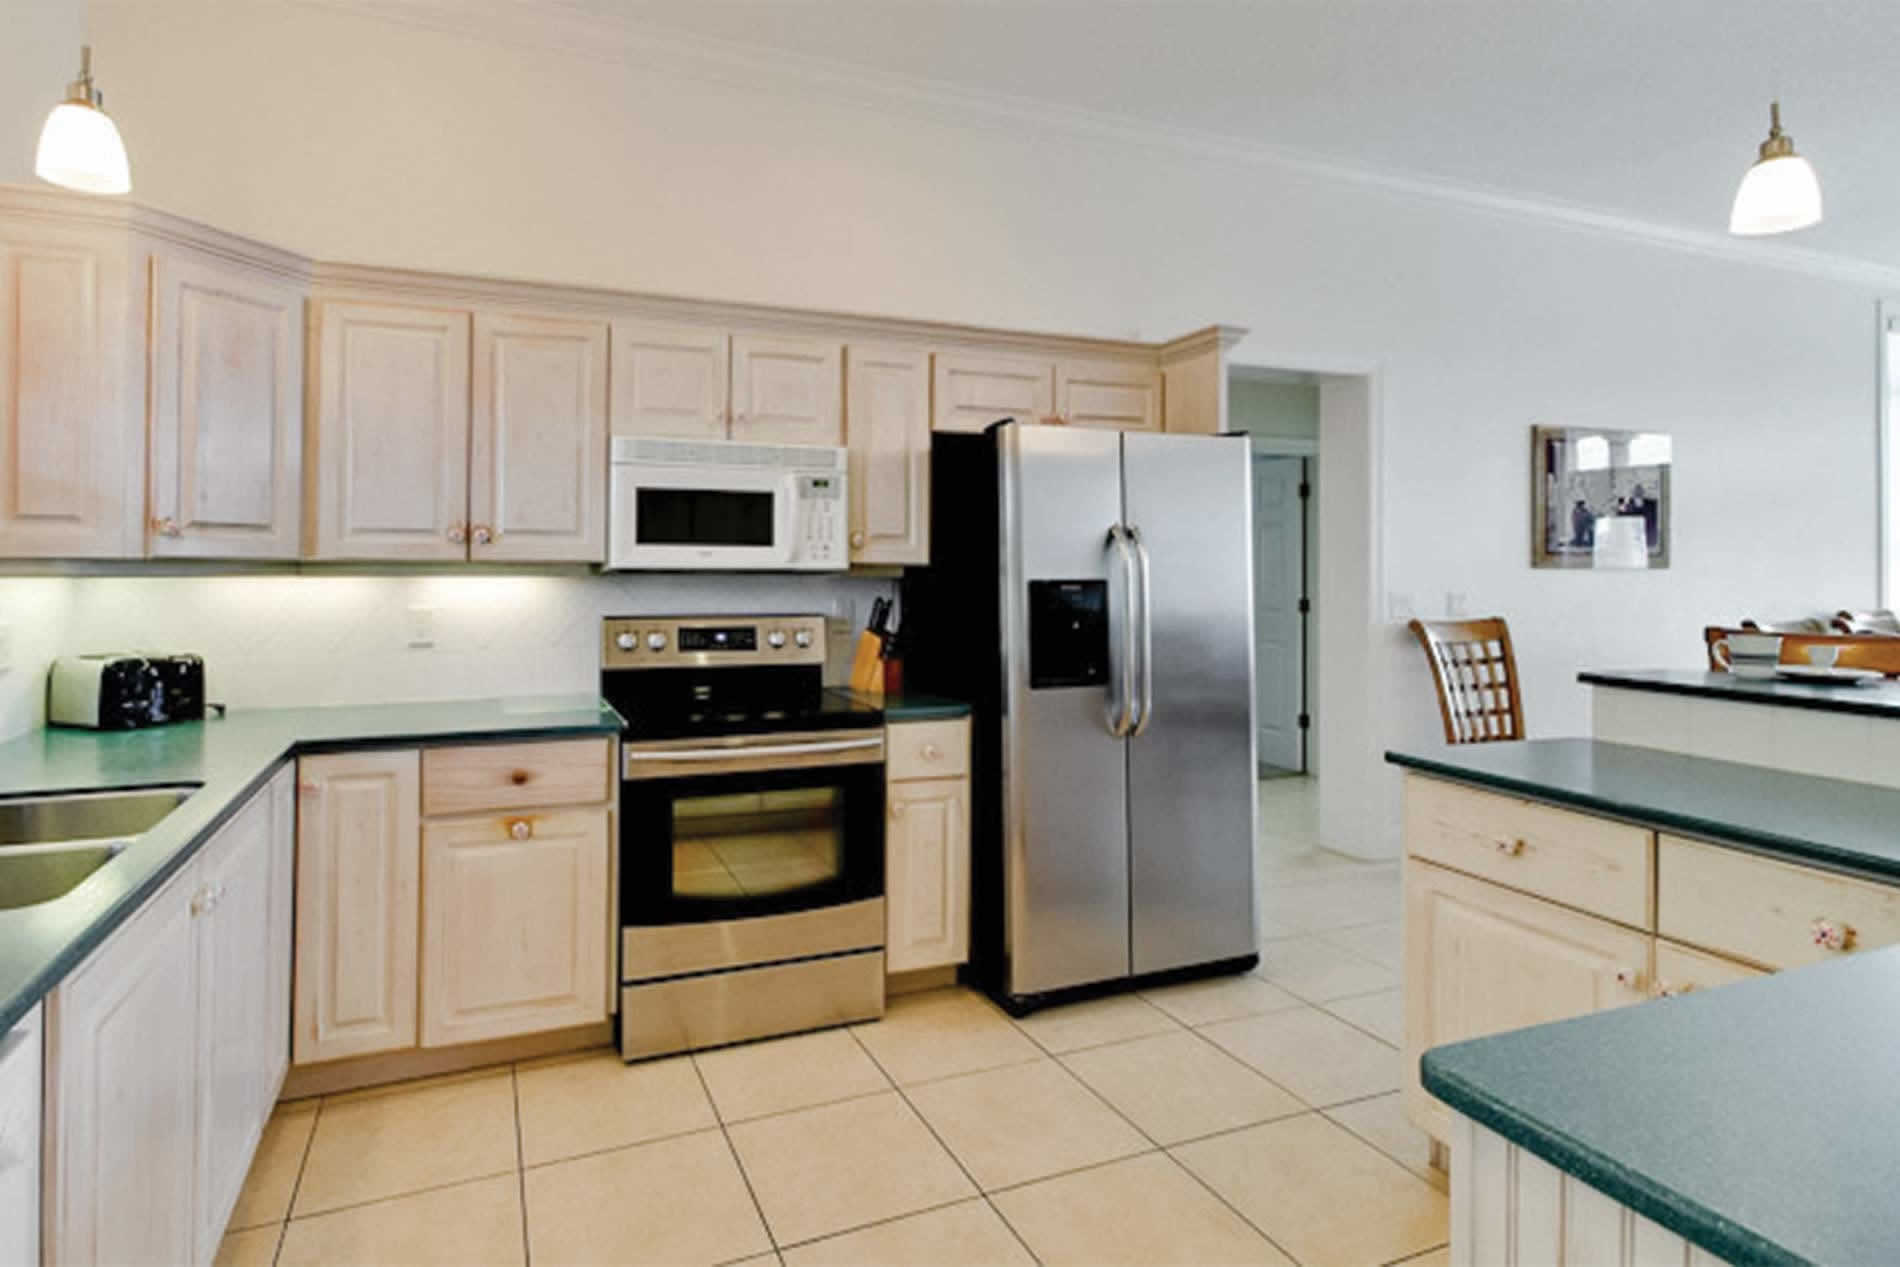 Villa 517 Key Royale Drive in Anna Maria Island - sleeps 10 people